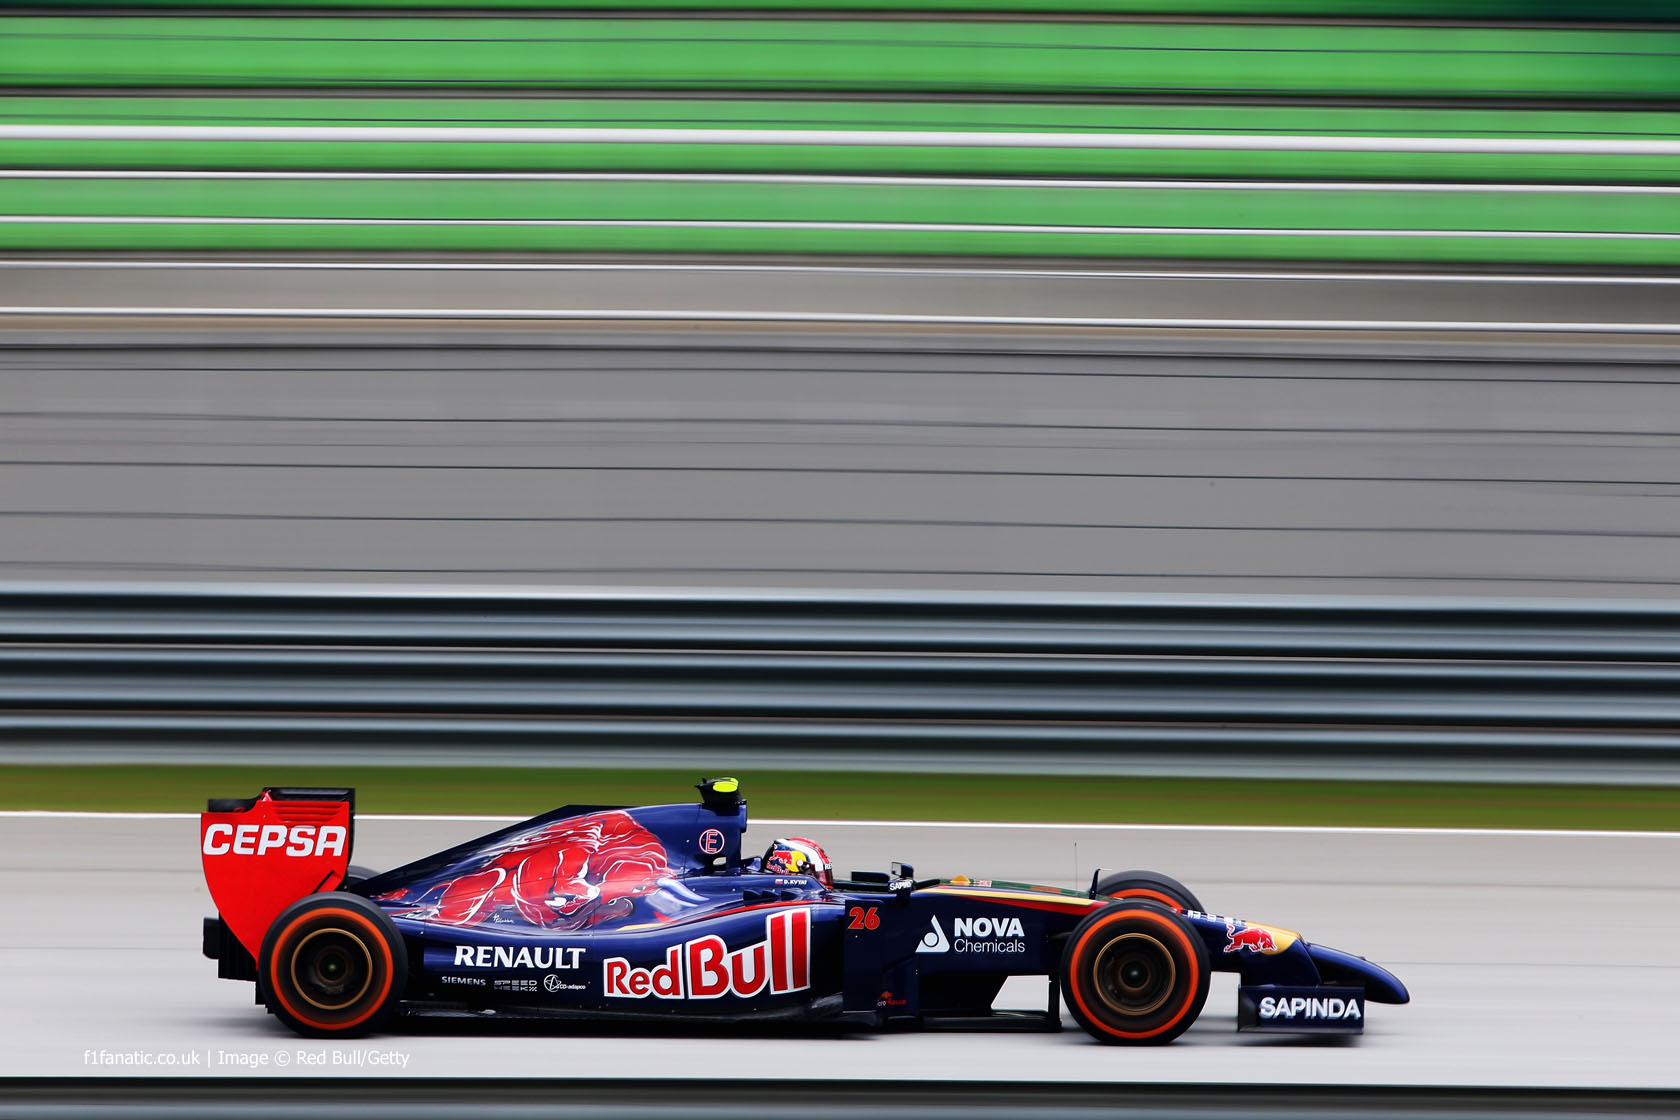 Daniil Kvyat, Toro Rosso, Sepang International Circuit, 2014